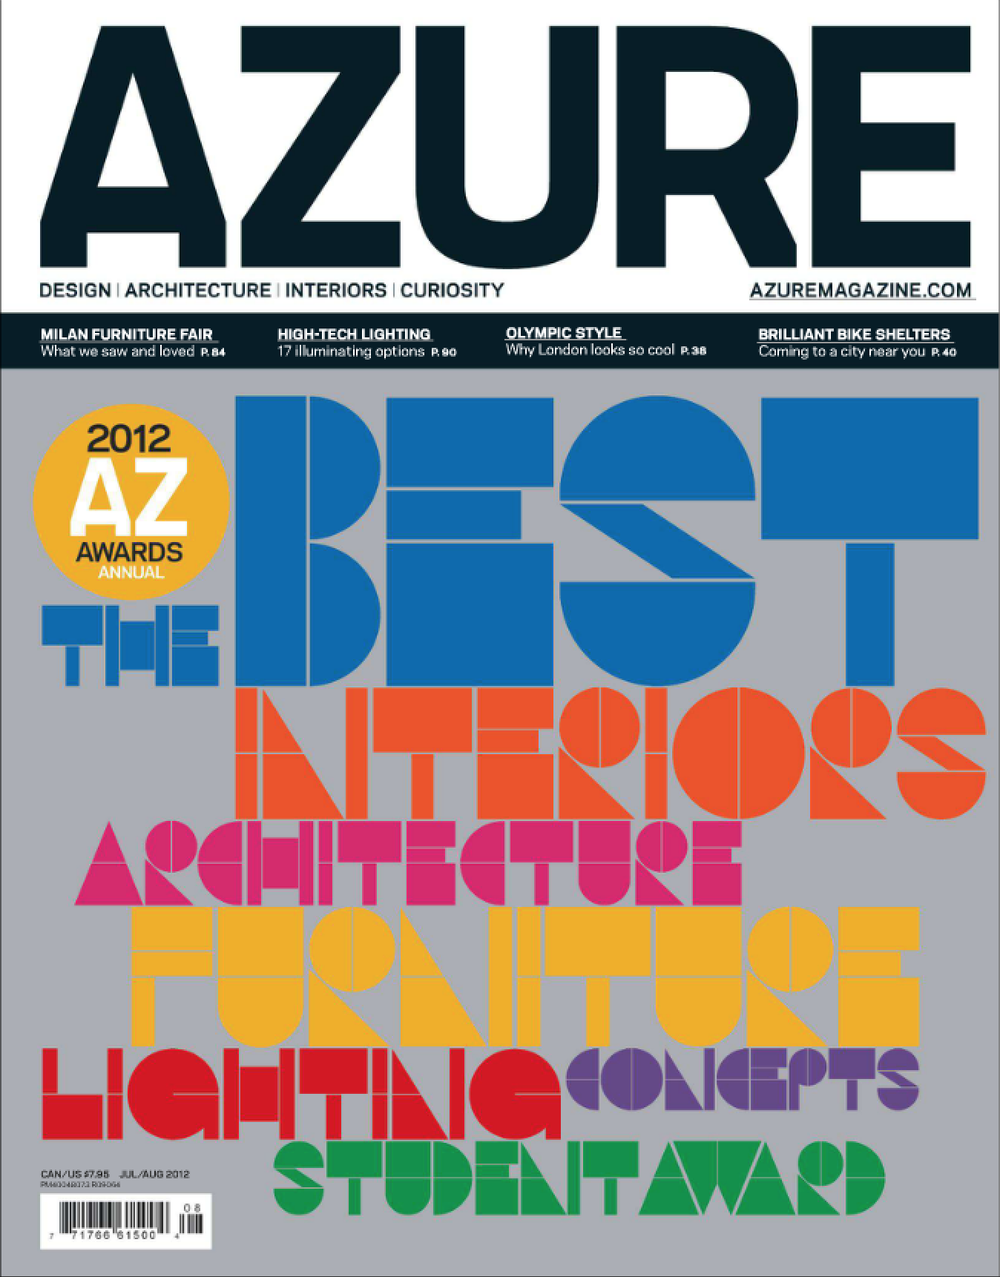 azure_cover.png